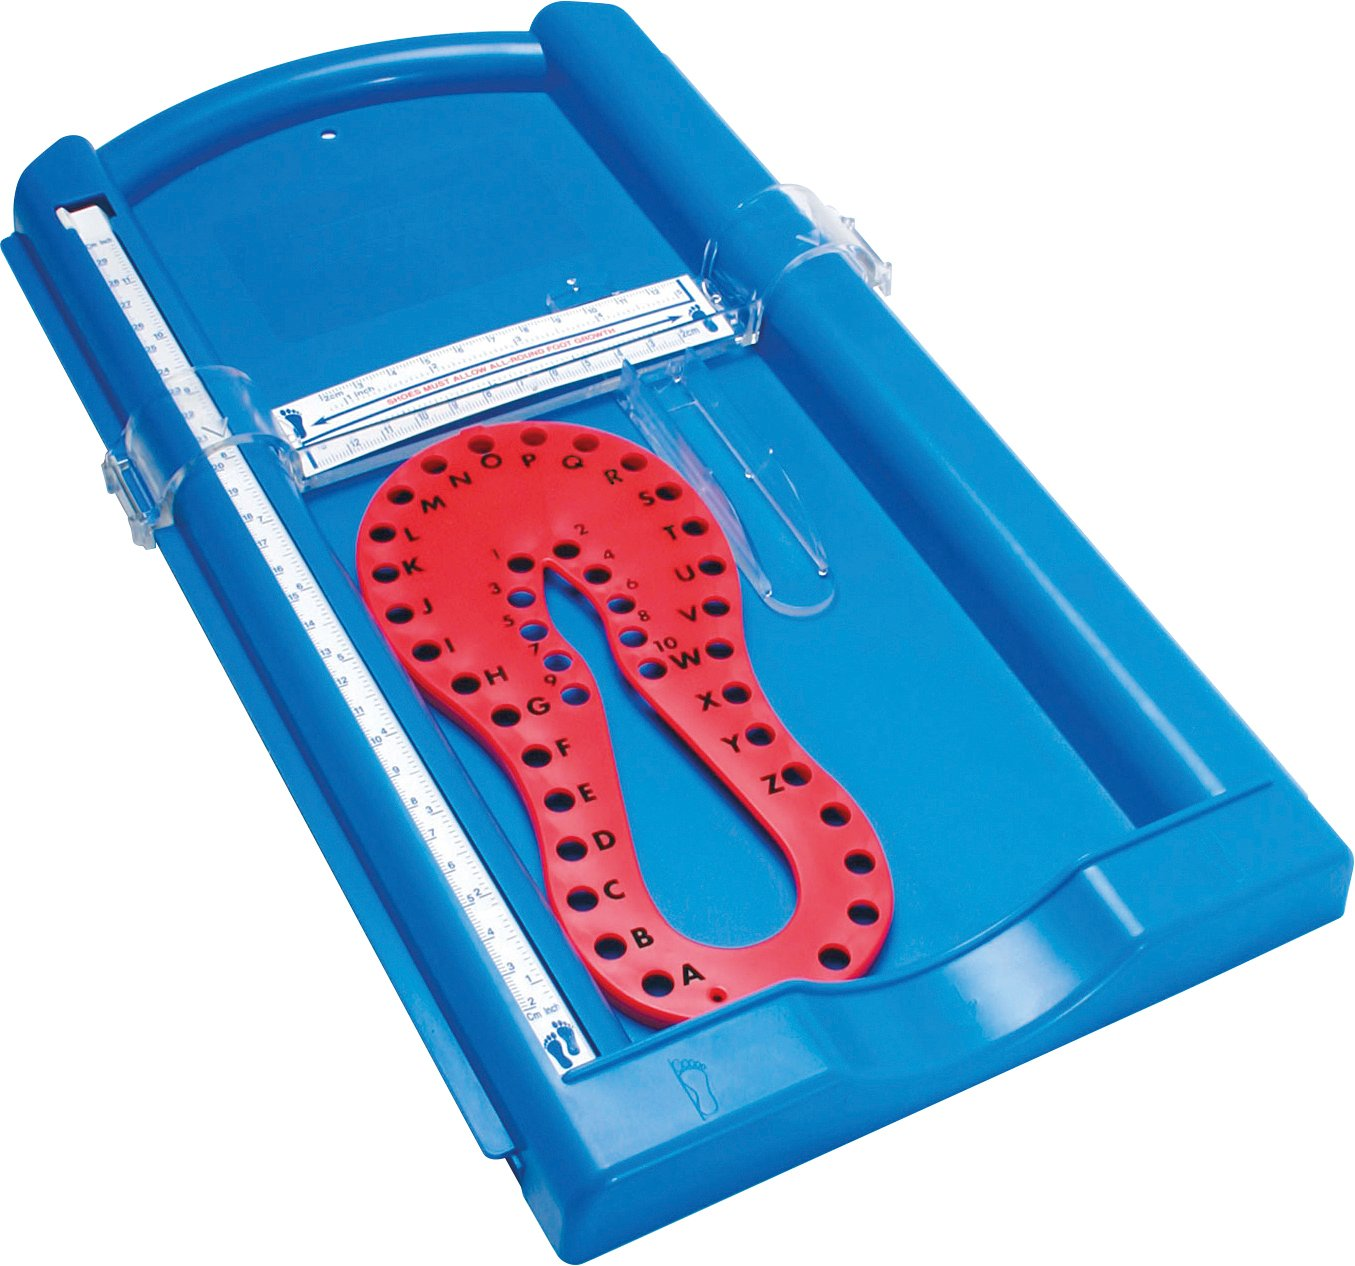 Eduplay Eduplay120420 Hand/Foot Measuring Device